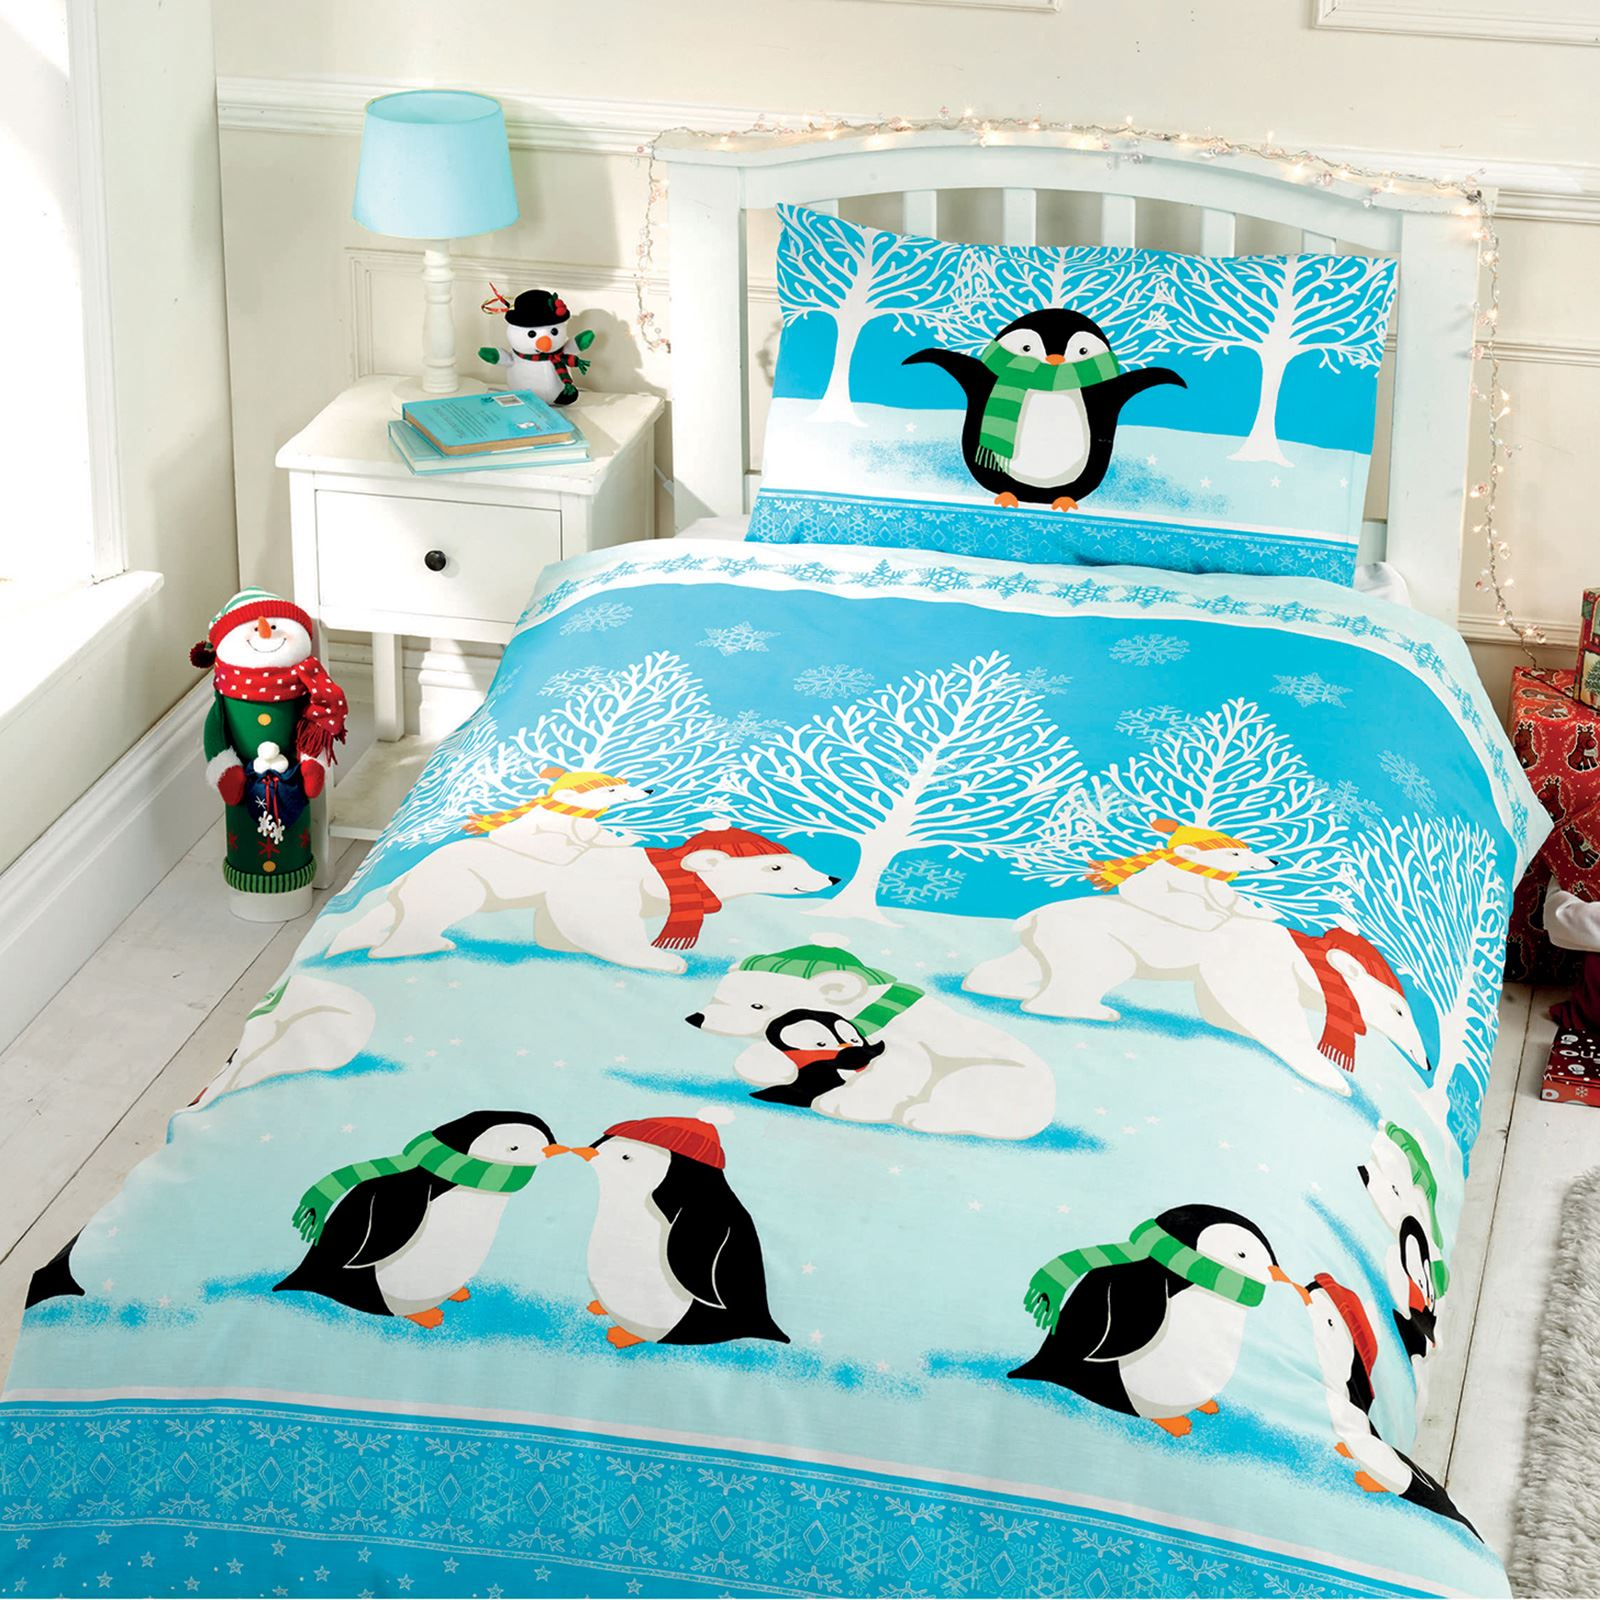 christmas duvet covers various designs available in single. Black Bedroom Furniture Sets. Home Design Ideas